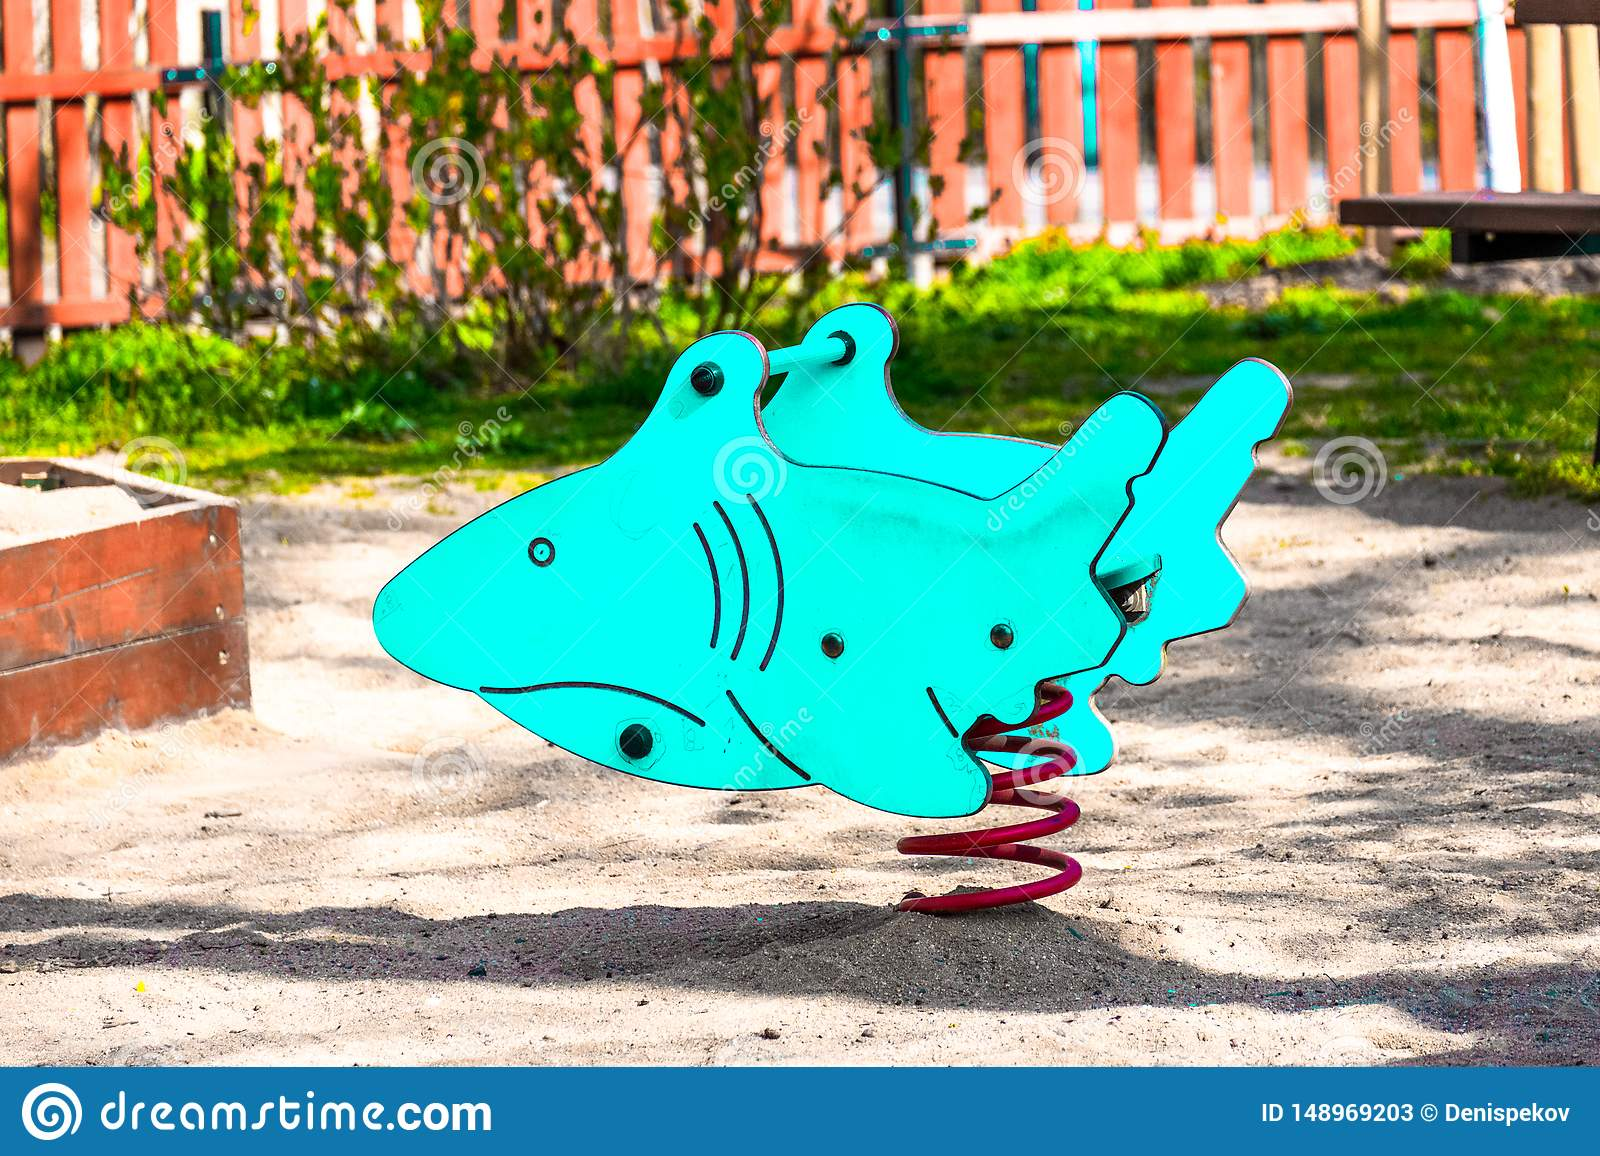 Children`s toy shark, blue color, on the playground for children